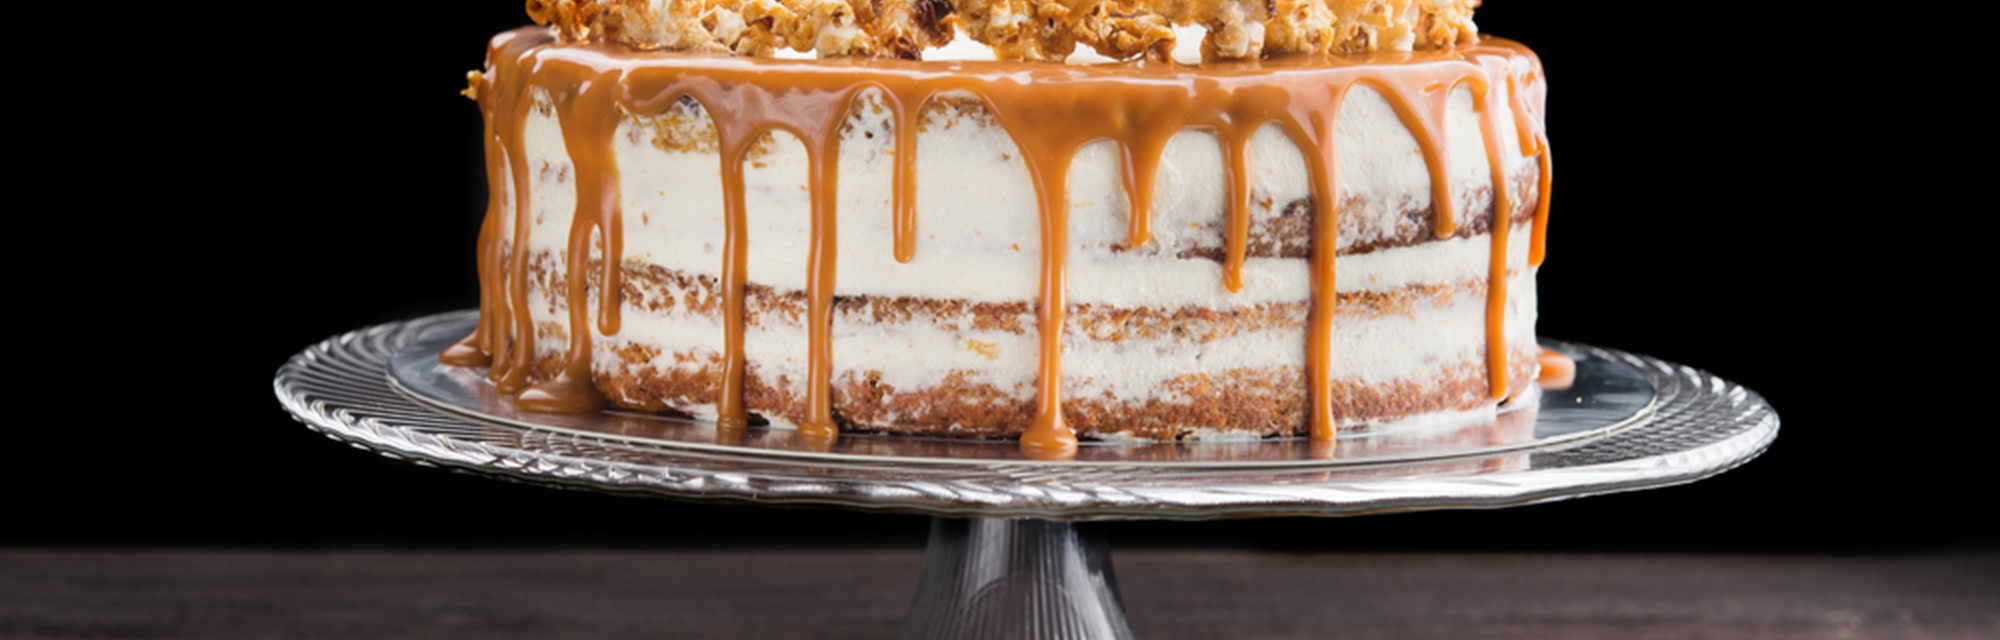 Header - Two Layer Chocolate Popcorn Cake With Toffee Sauce